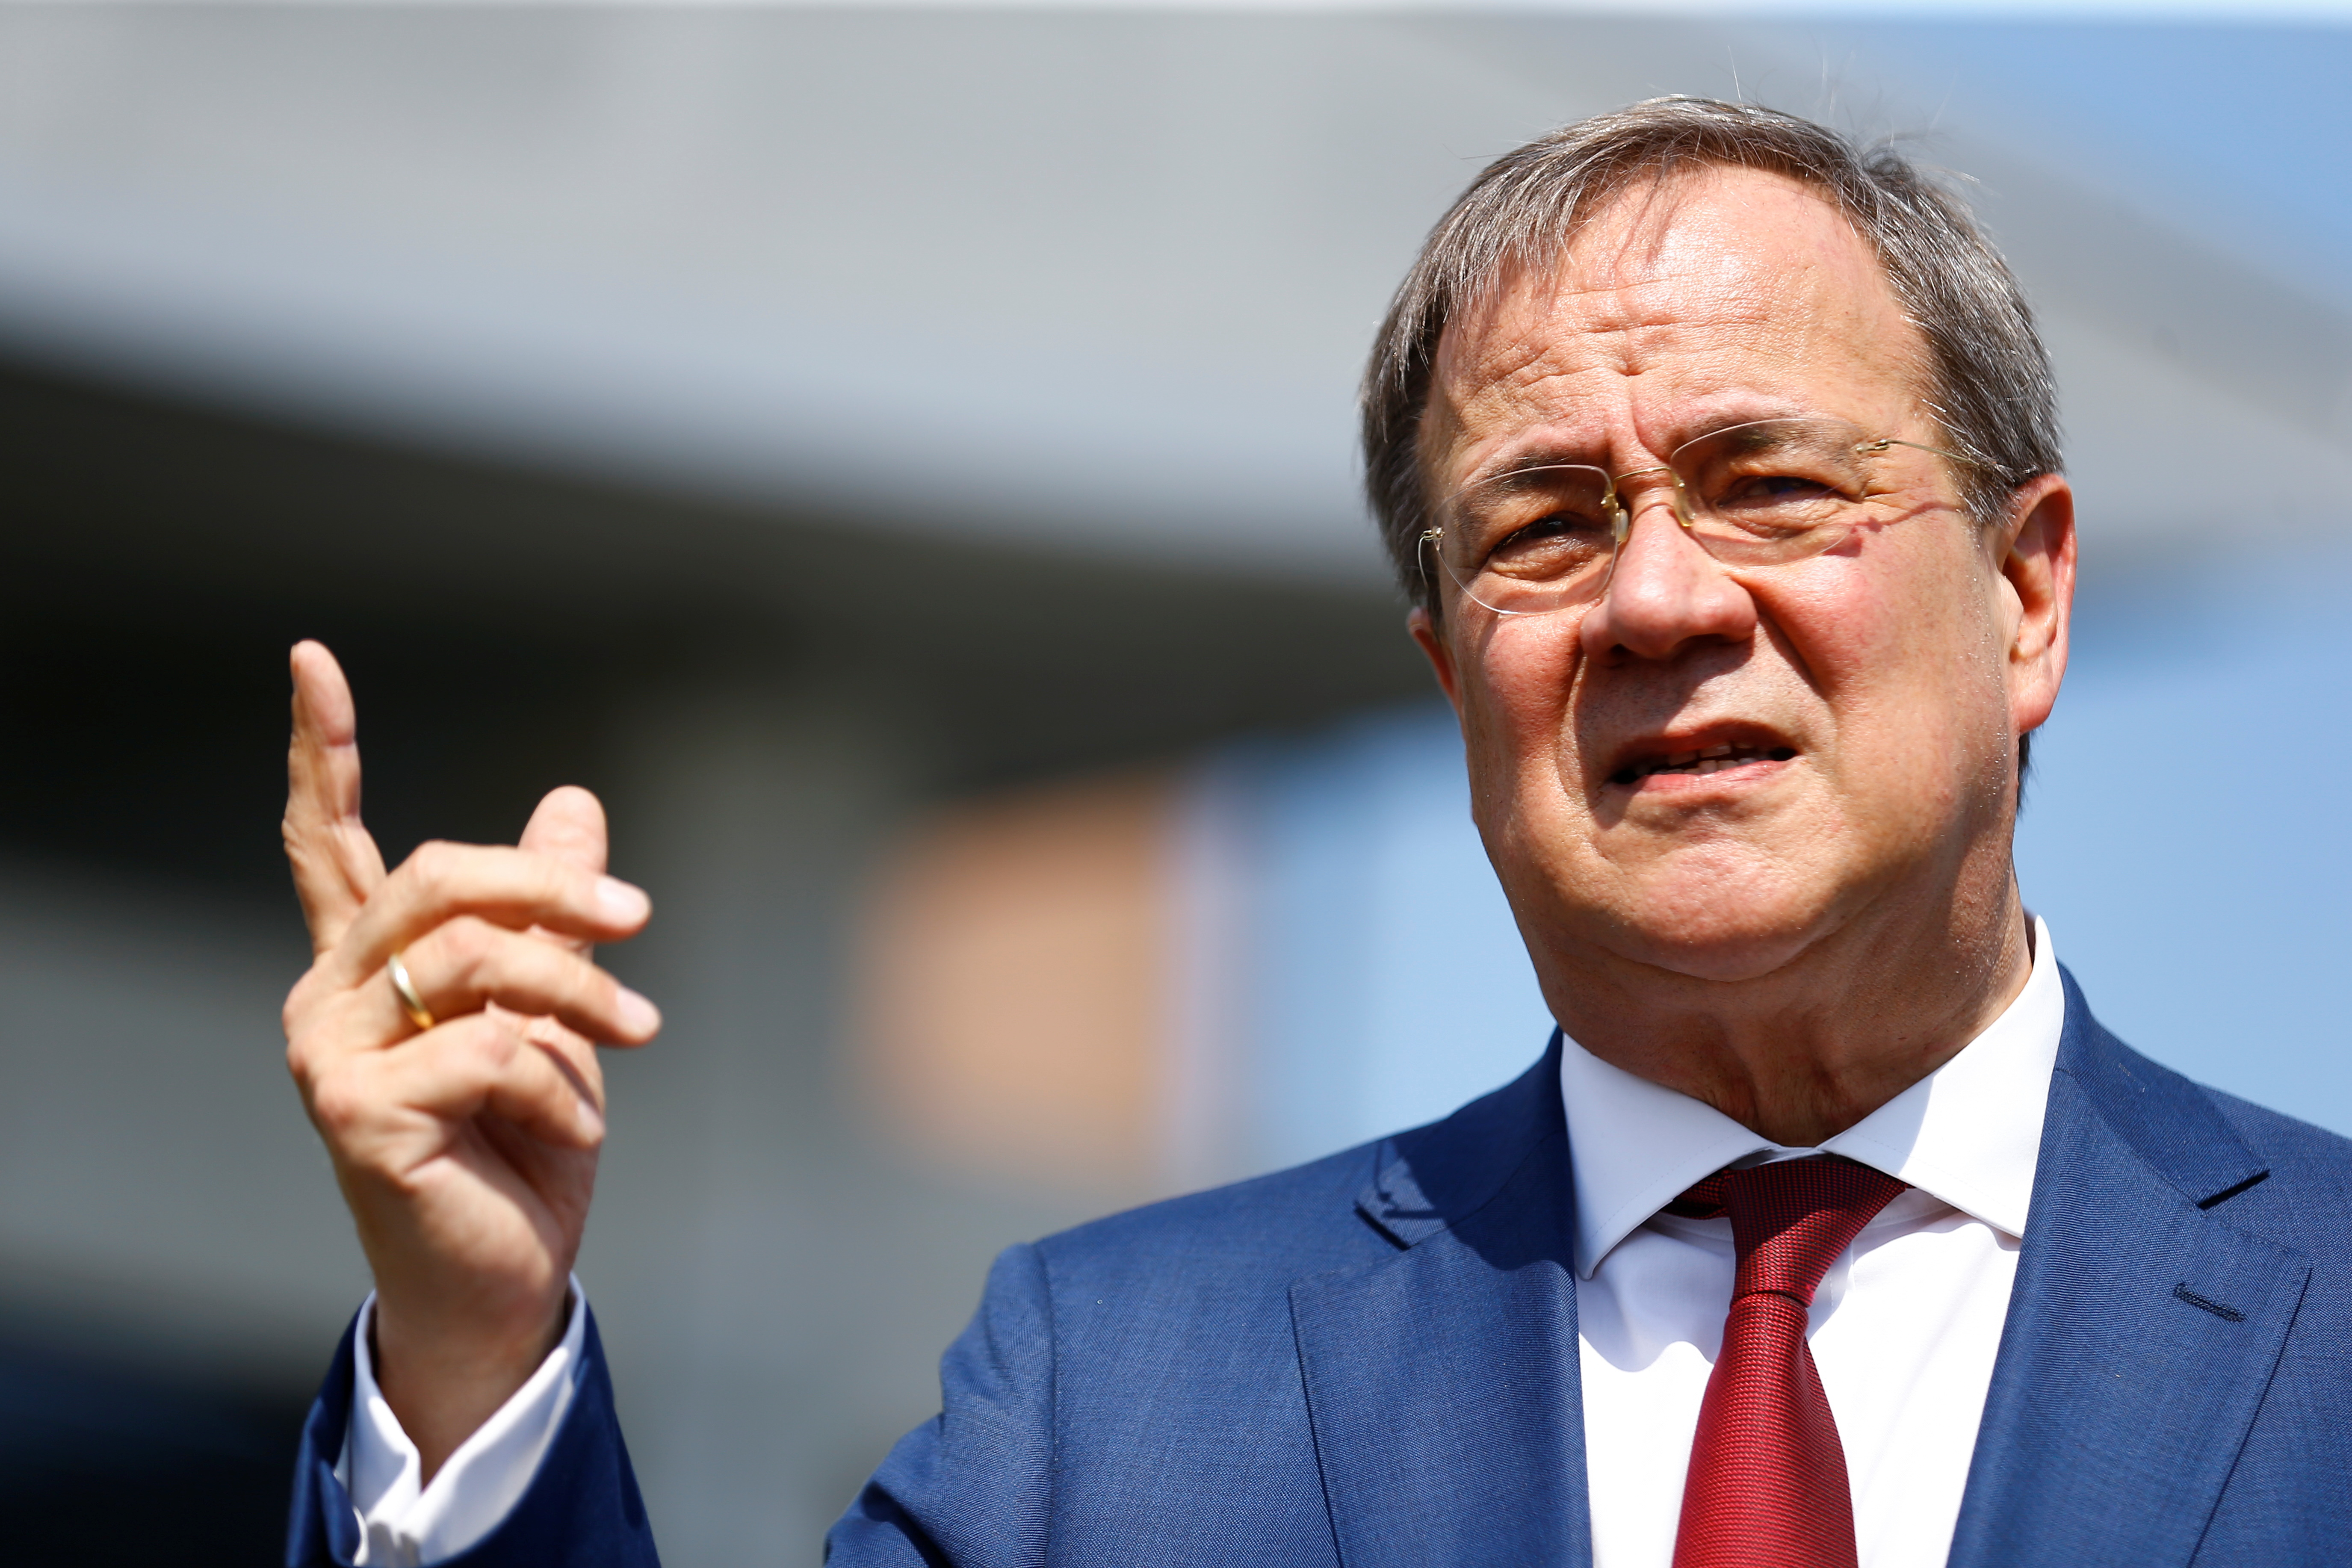 Christian Democratic Union (CDU) leader, Prime Minister of North Rhine-Westphalia and candidate for Chancellor Armin Laschet, speaks as he attends a launch event for a hydrogen electrolysis plant called 'REFHYNE', one of the world's first green hydrogen plants, at Shell's Rhineland refinery in Wesseling near Cologne, Germany, July 2, 2021. REUTERS/Thilo Schmuelgen